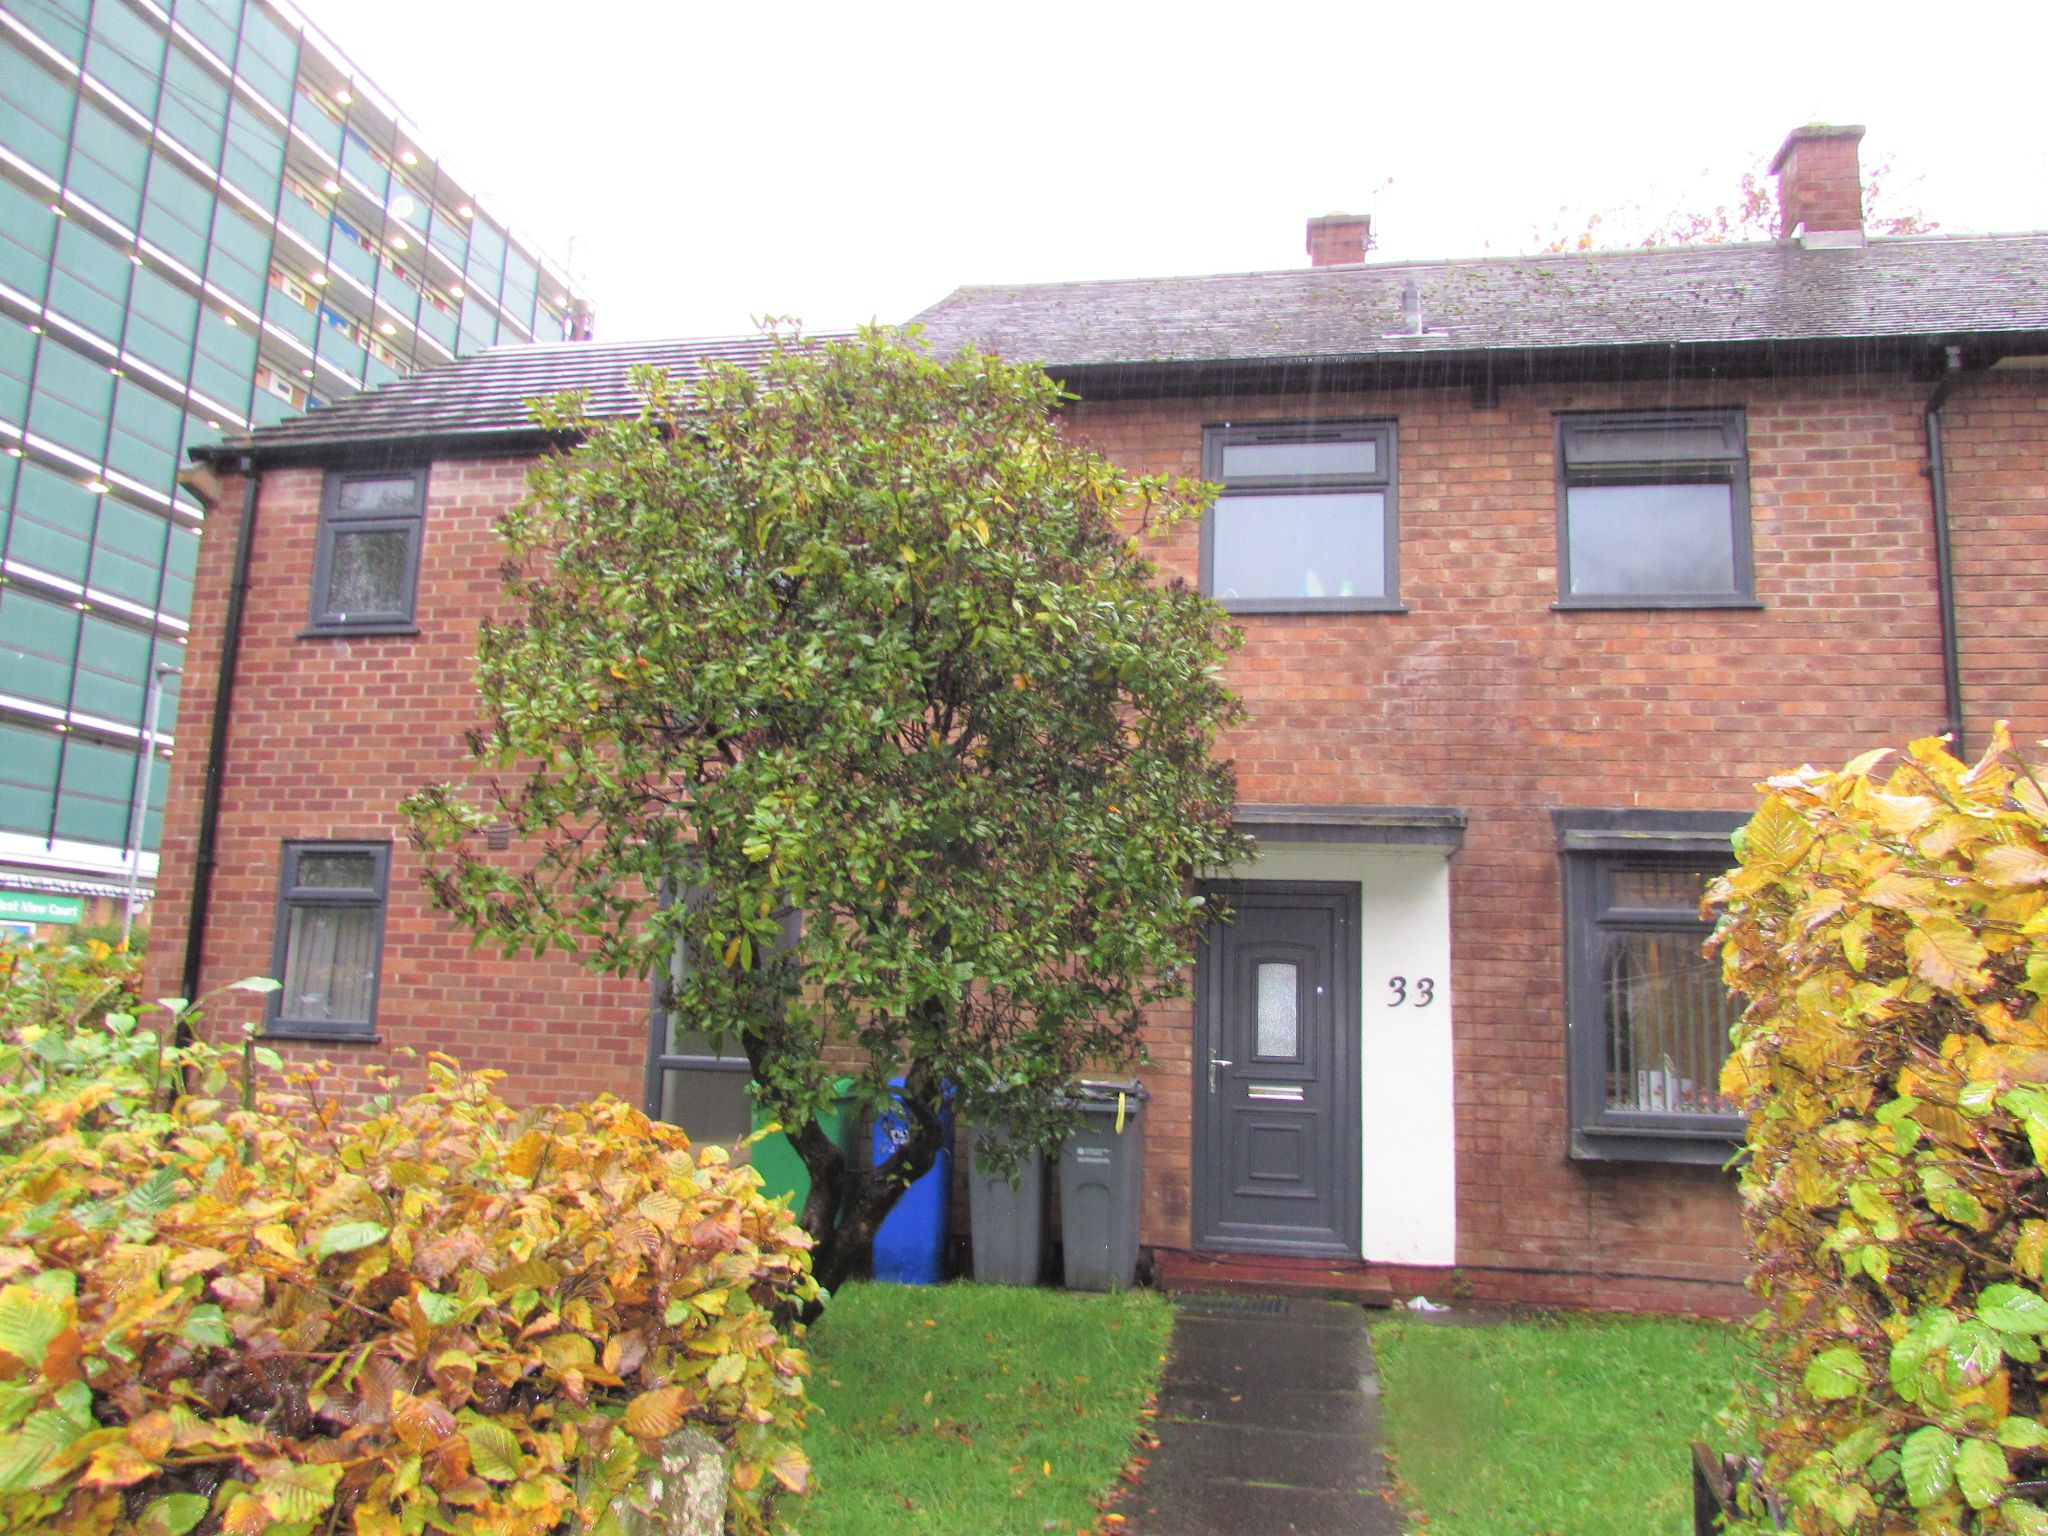 1 Bedroom Shared House To Rent - Photograph 7